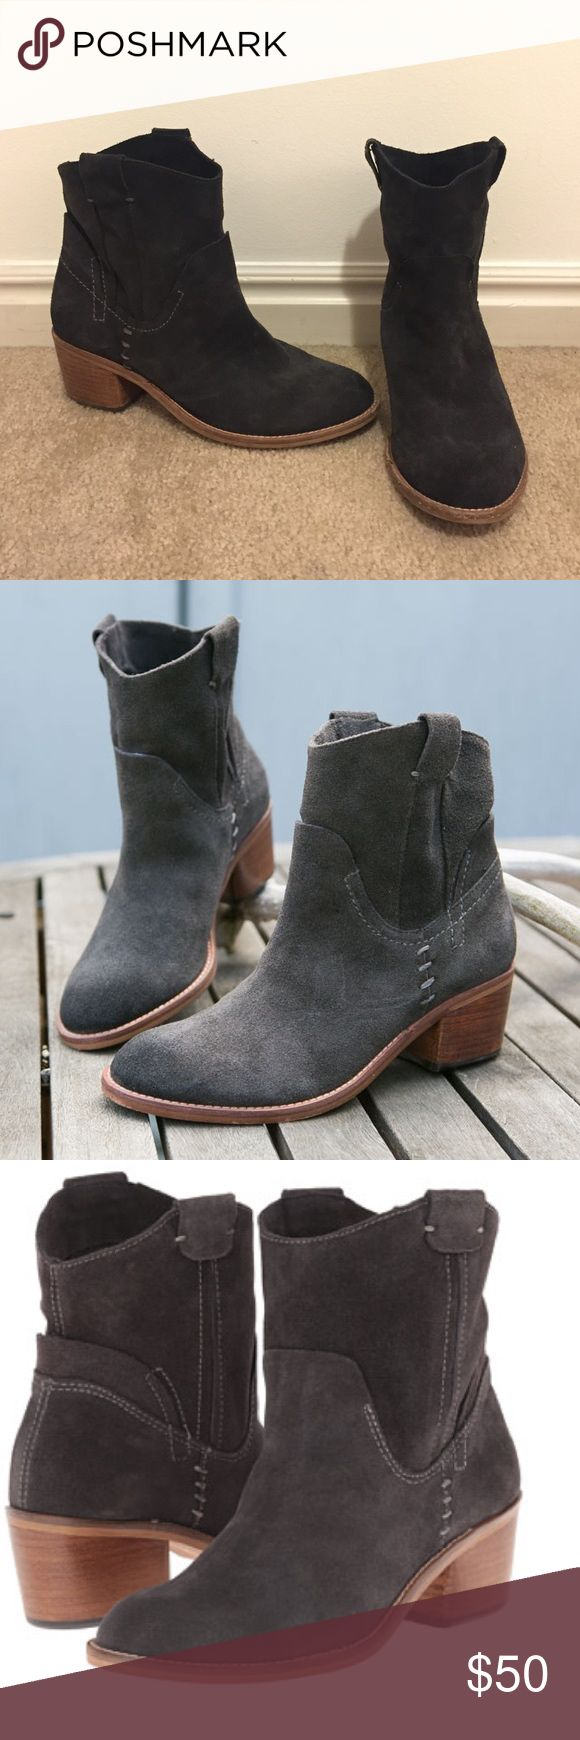 """Dolce Vita Graham/Grayden suede bootie, sz 8.5 Charcoal suede color. Like new. Worn a handful of times. Bring a little Wild West to your wardrobe with this ranch-ready suede bootie. The chunky, low heel and round toe give you room to pair with rustic denim or floaty boho styles, while the stitched details and double pull tabs keep the look authentic. 2"""" heel. 7"""" boot shaft. Suede upper/leather lining/rubber sole. By Dolce Vita Dolce Vita Shoes Ankle Boots & Booties"""